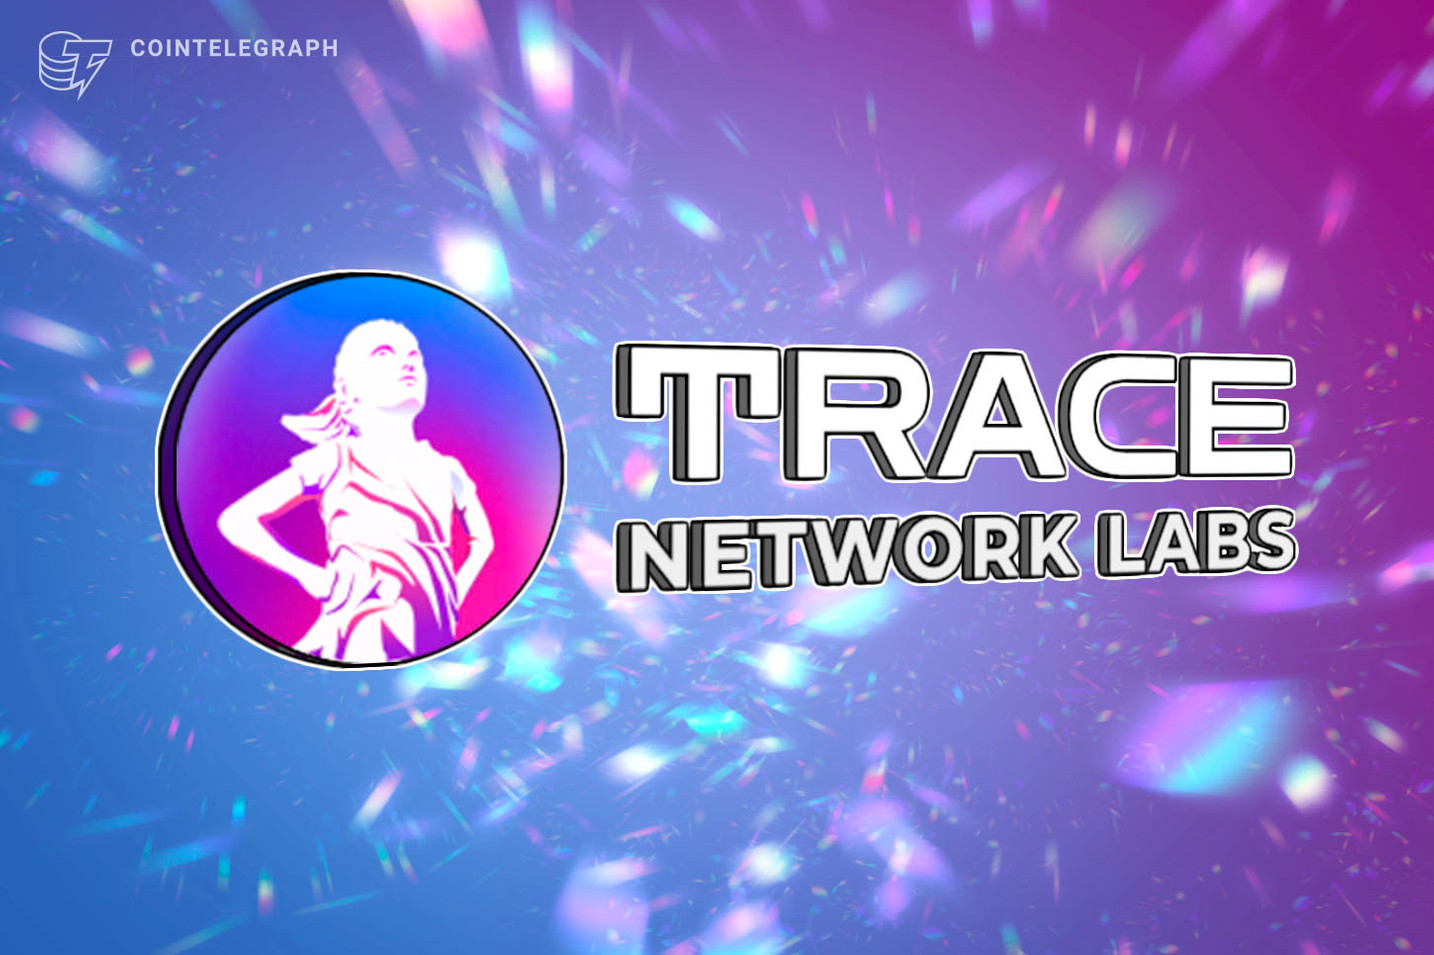 Trace Network Labs rebrands and brings luxury lifestyles into the metaverse